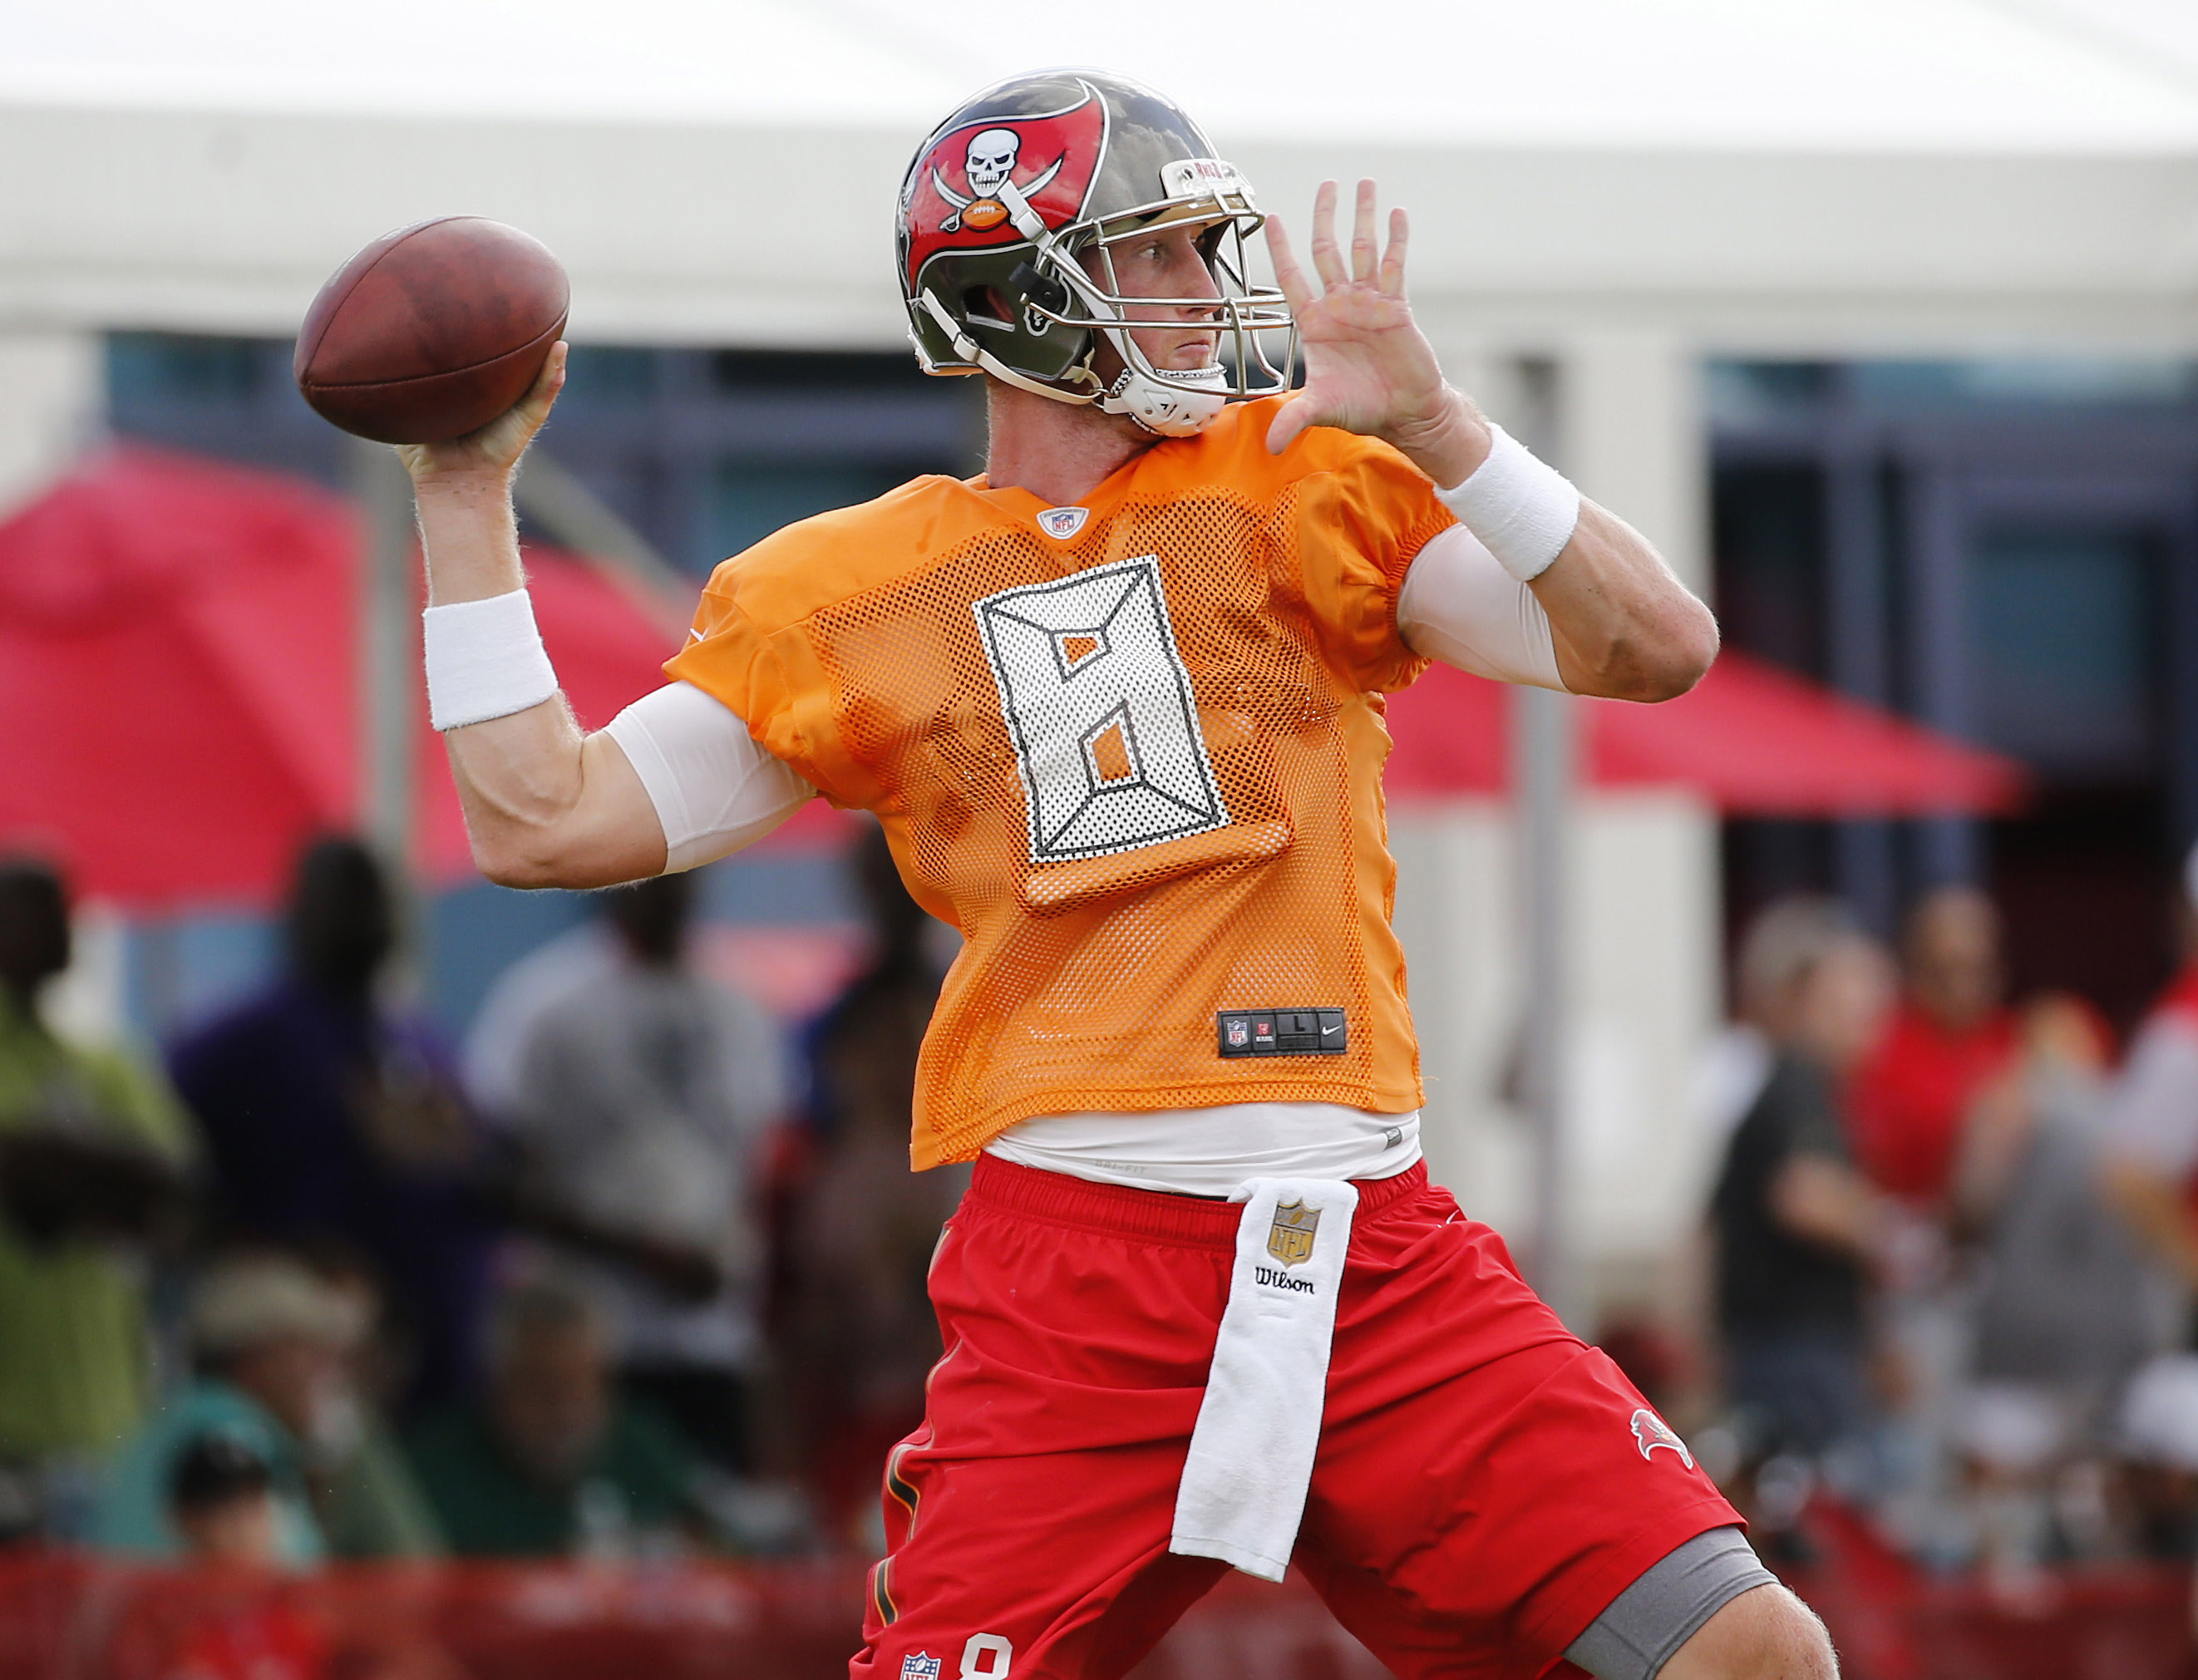 9412210-nfl-tampa-bay-buccaneers-training-camp